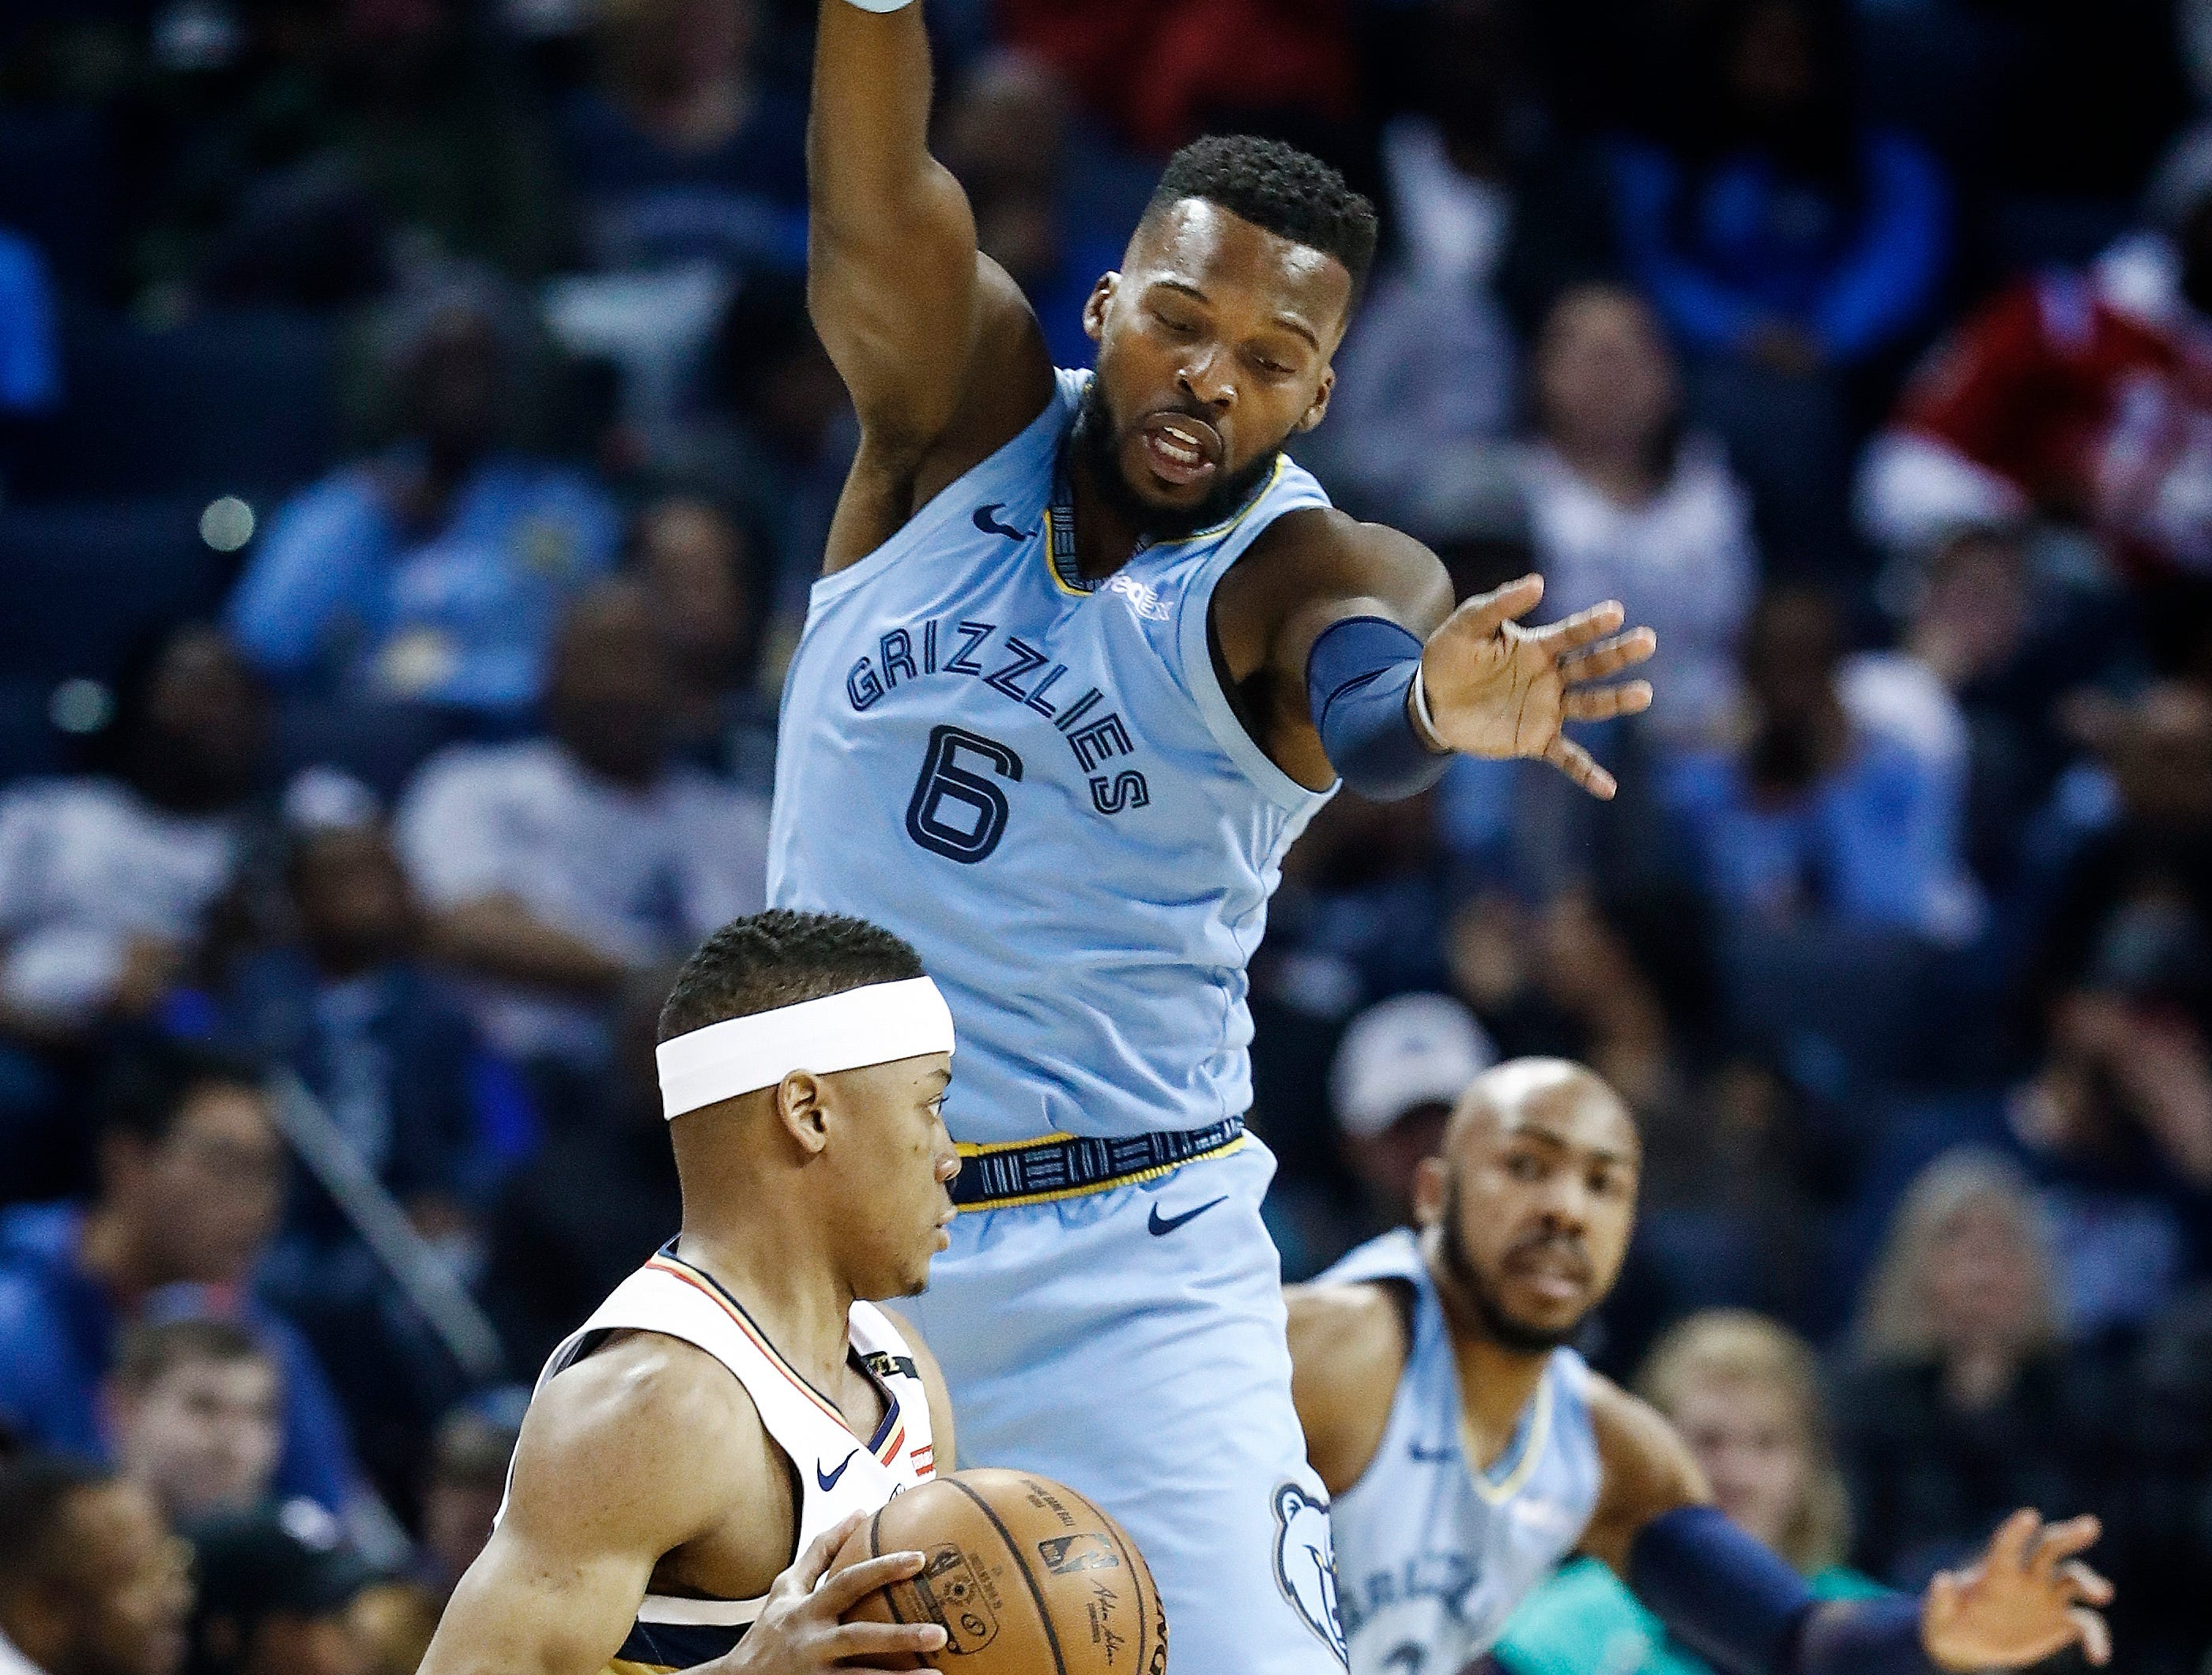 Memphis Grizzlies defender Shelvin Mack (top) looks to stop New Orleans Pelicans guard Tim Frazier (bottom) during action at the FedExForum in Memphis, Tenn., Monday, January 21, 2019.